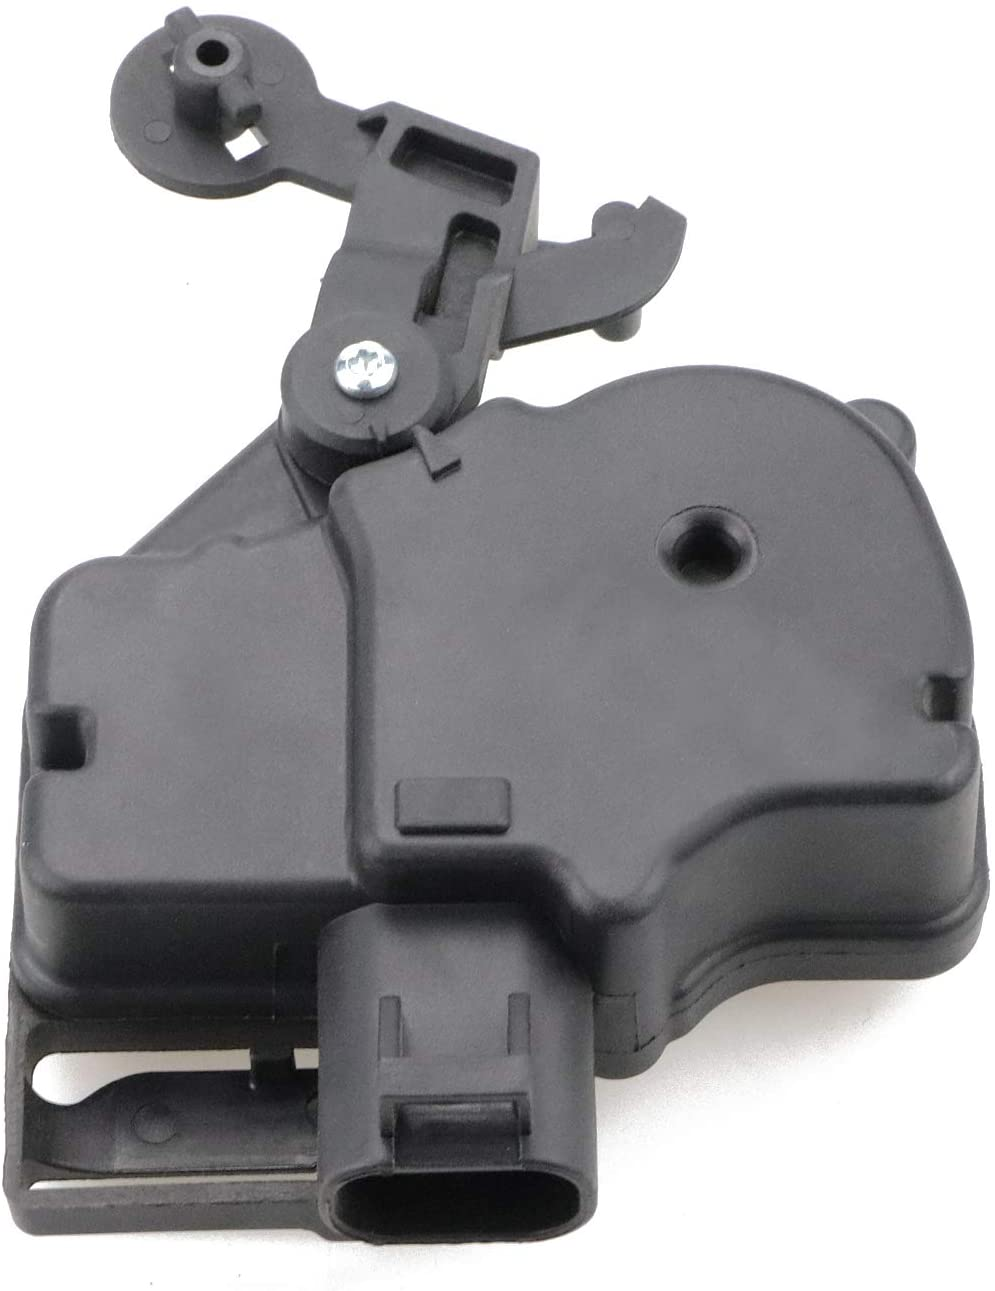 Rear Liftgate Door Lock Actuator Replaces For 746-015, 25001736, 746015, 15250765, 15808595 Fit Chevy, GMC Yukon, Cadillac Escalade And More - Tailgate Hatch Actuator